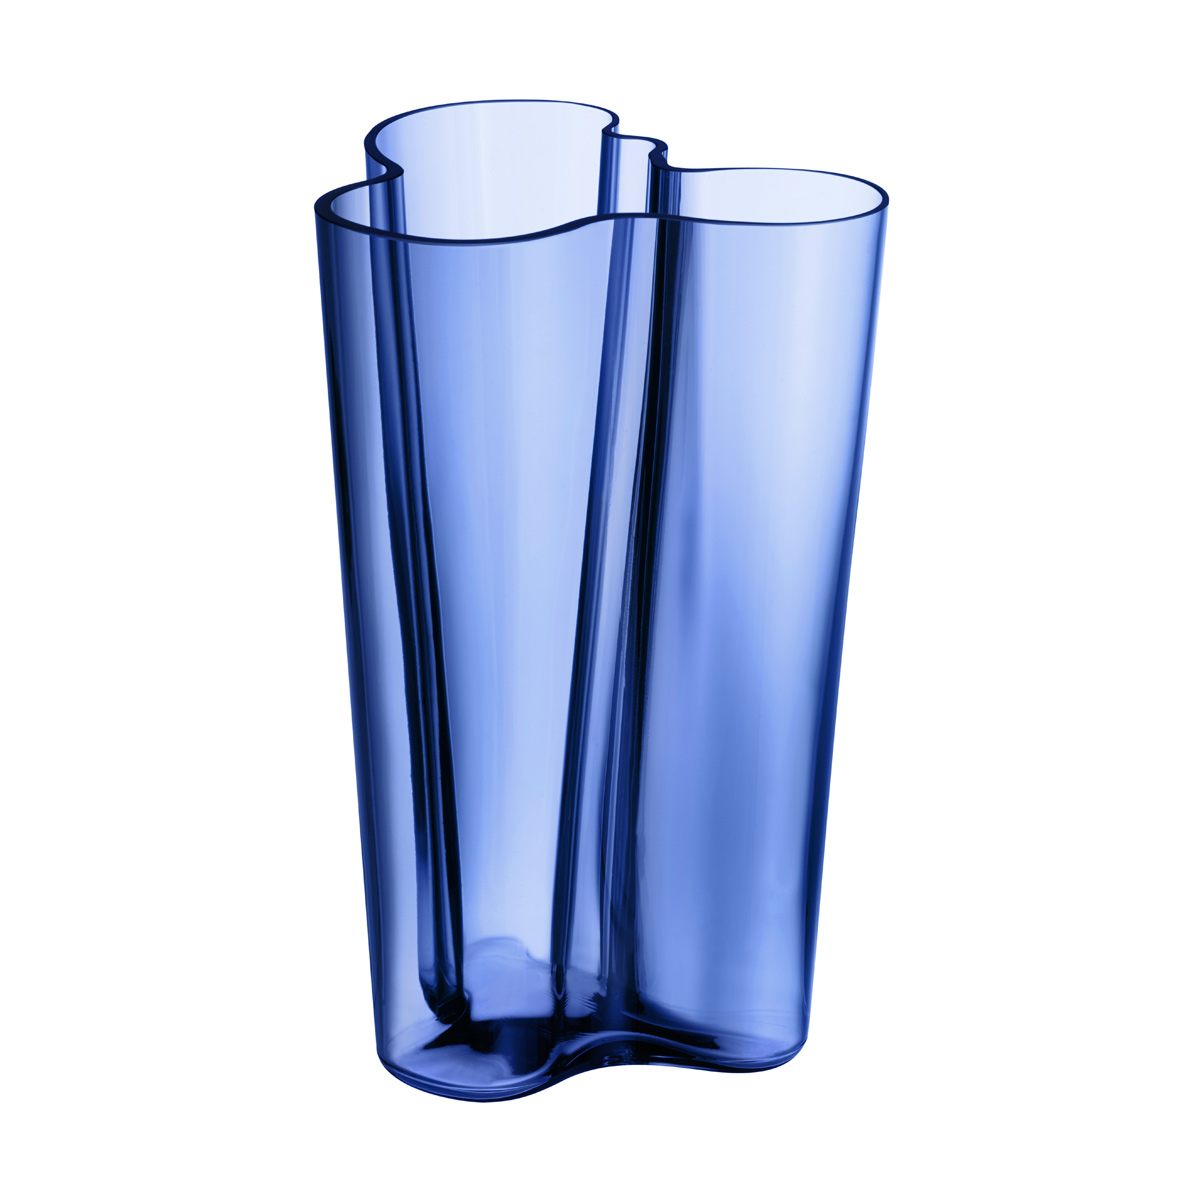 iittala aalto finlandia ultramarine 39 finland 100 39 vase. Black Bedroom Furniture Sets. Home Design Ideas